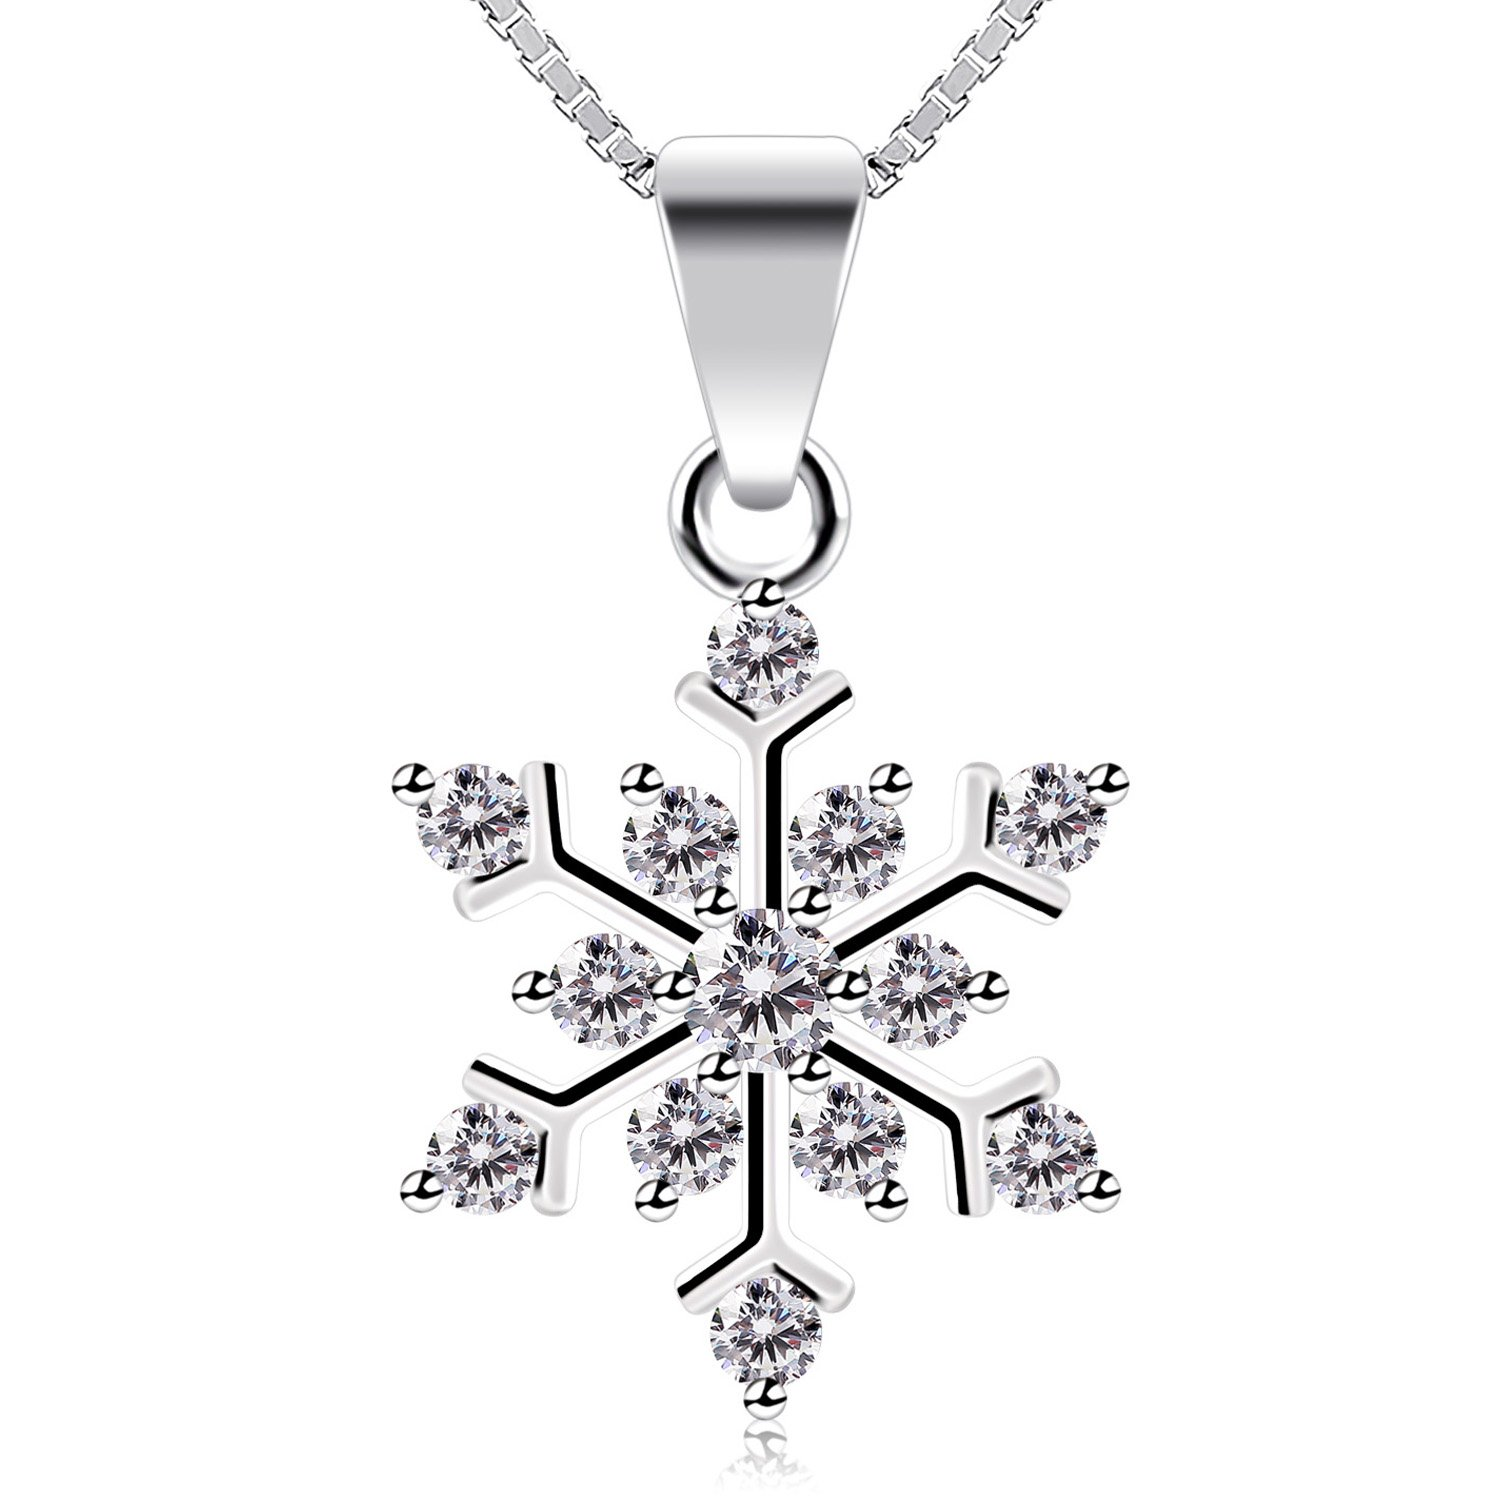 sterling silver com by notonthehighstreet necklace product snowflake pendant original dizzy